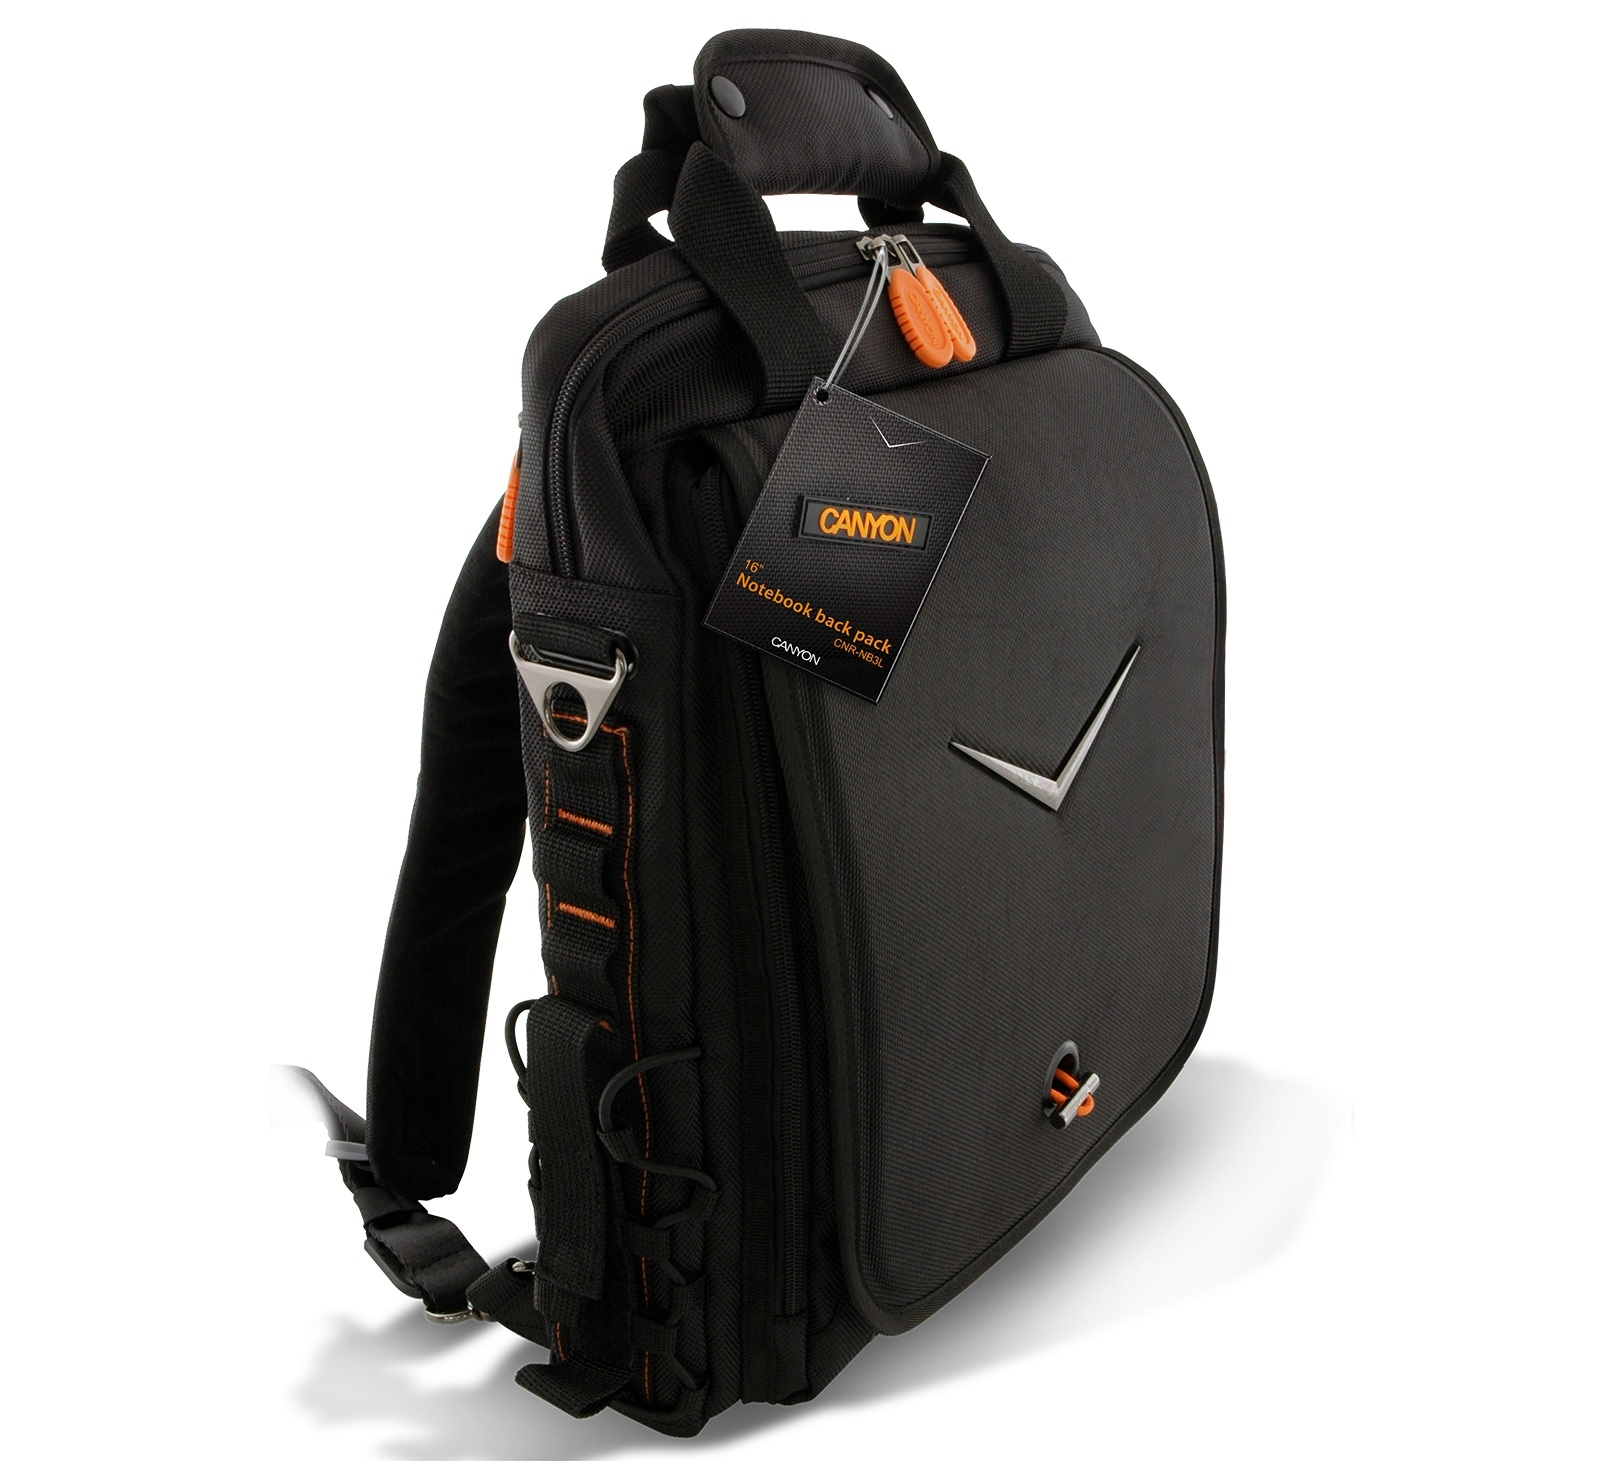 CANYON CNR-NB3L1 Backpack Black 16